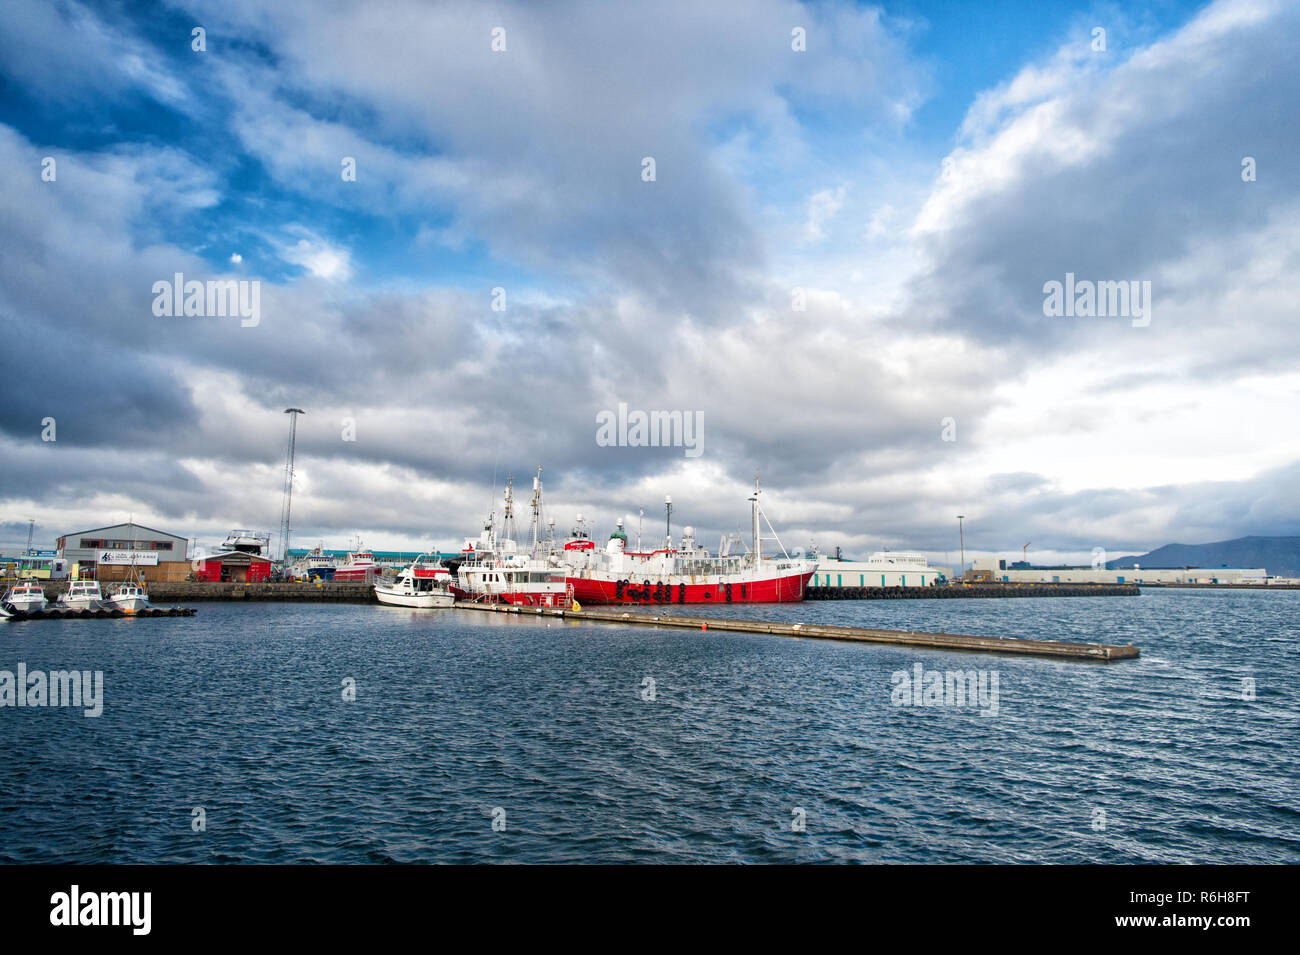 Reykjavik, Iceland - October 13, 2017: ship in sea port. Boat travel. Ship a sea. Ship acoustic navigation system. Boat ahoy. The world is yours, travel more. Stock Photo